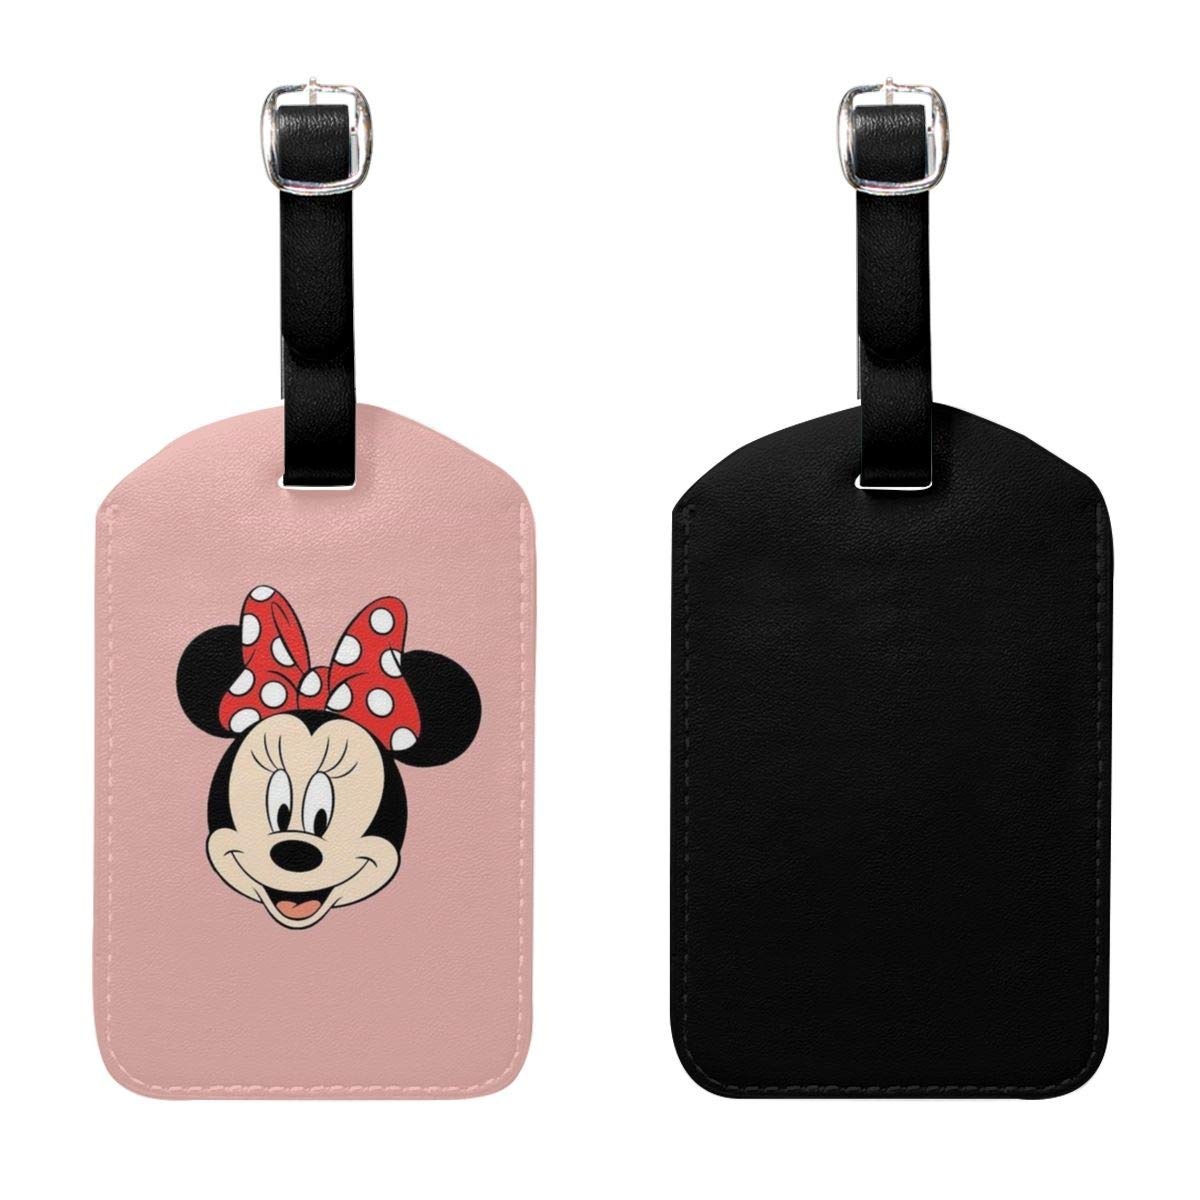 Set of 2 PU Leather Luggage Tags Minnie Mouse Suitcase Labels Bag Adjustable Leather Strap Travel Accessories